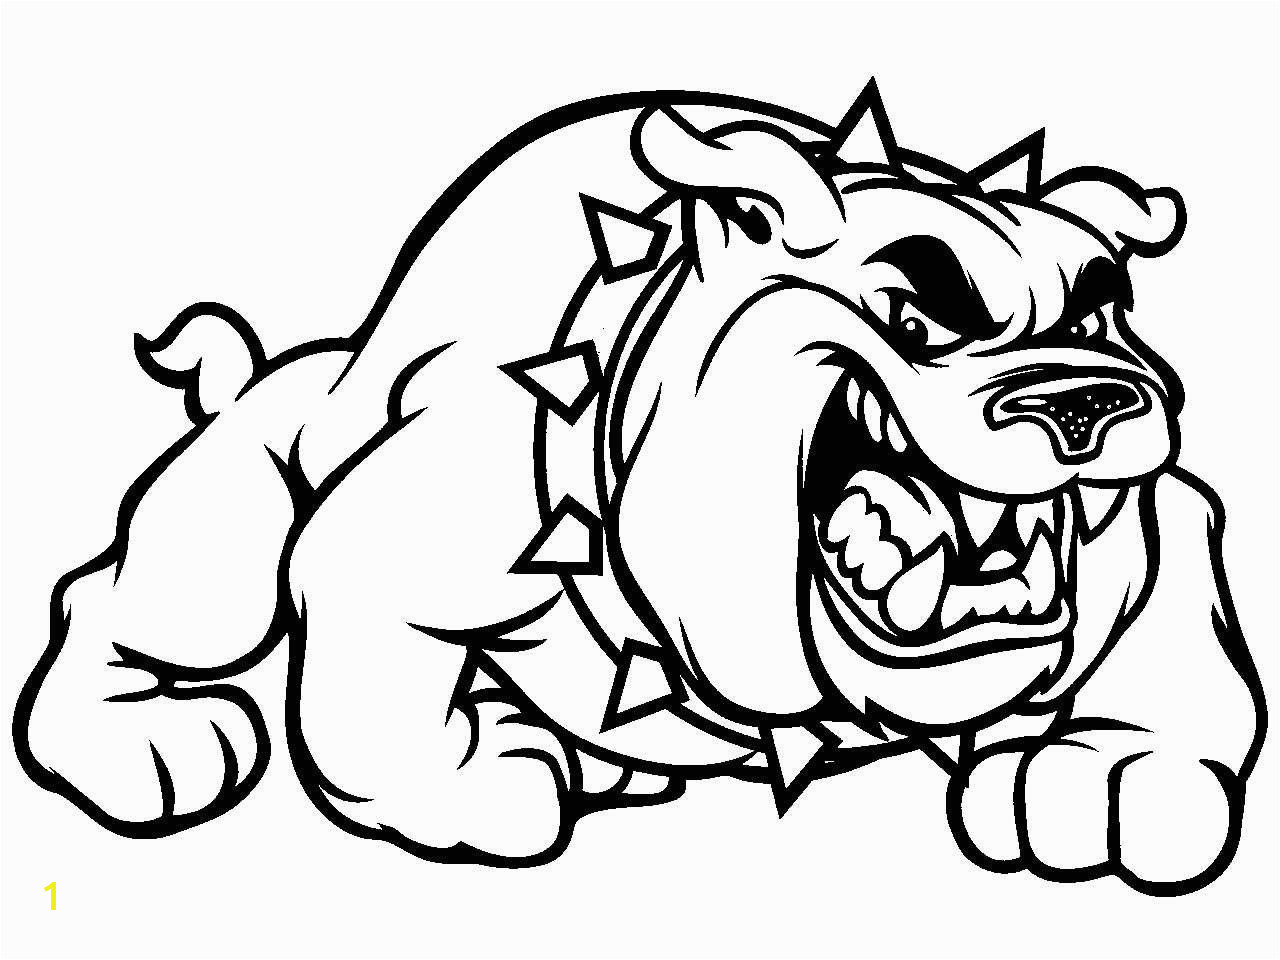 Bulldog Coloring Pages Inspirational Cool Od Dog Coloring Pages Free Best Bulldog Coloring Pages